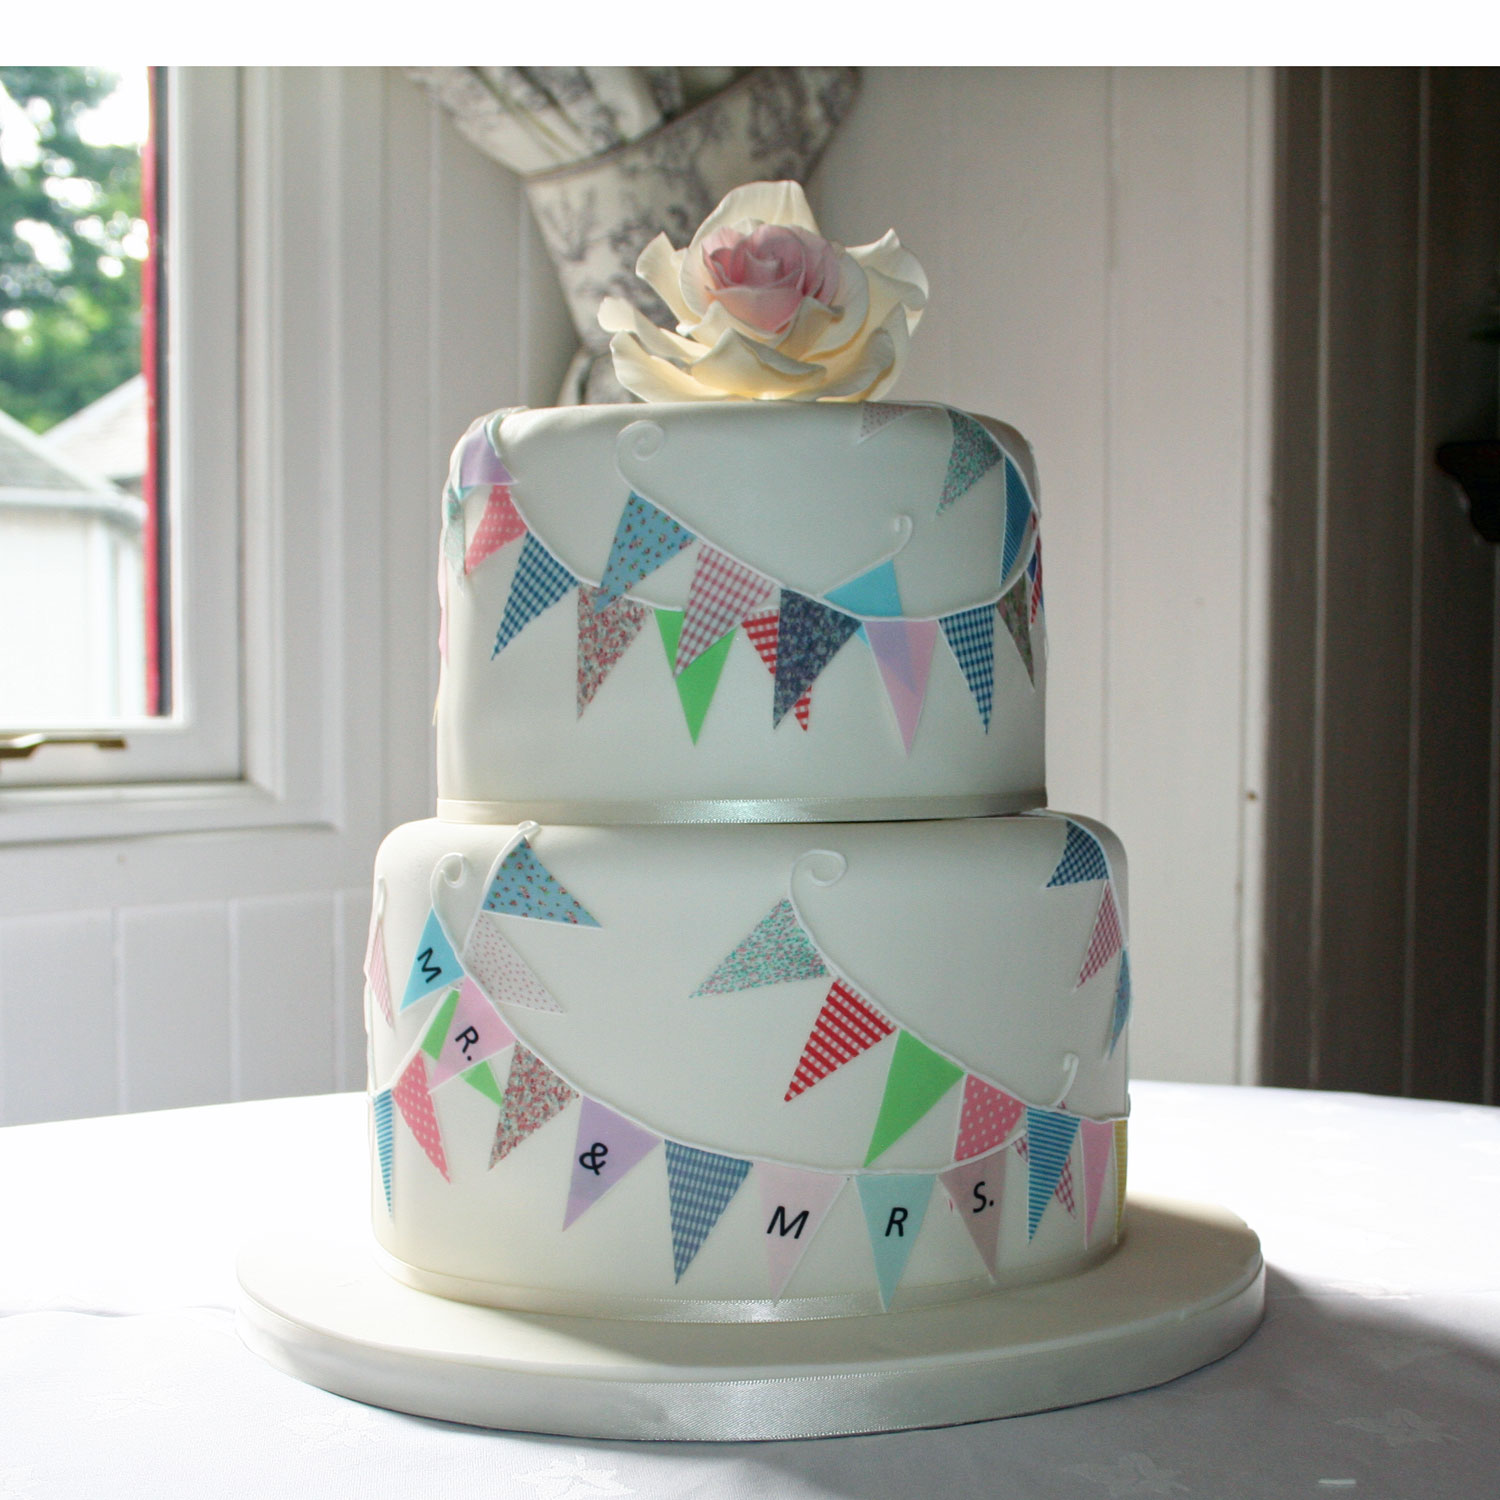 Bunting Decoration For Cake : Edible Bunting Edible Bunting for Wedding and Celebration ...